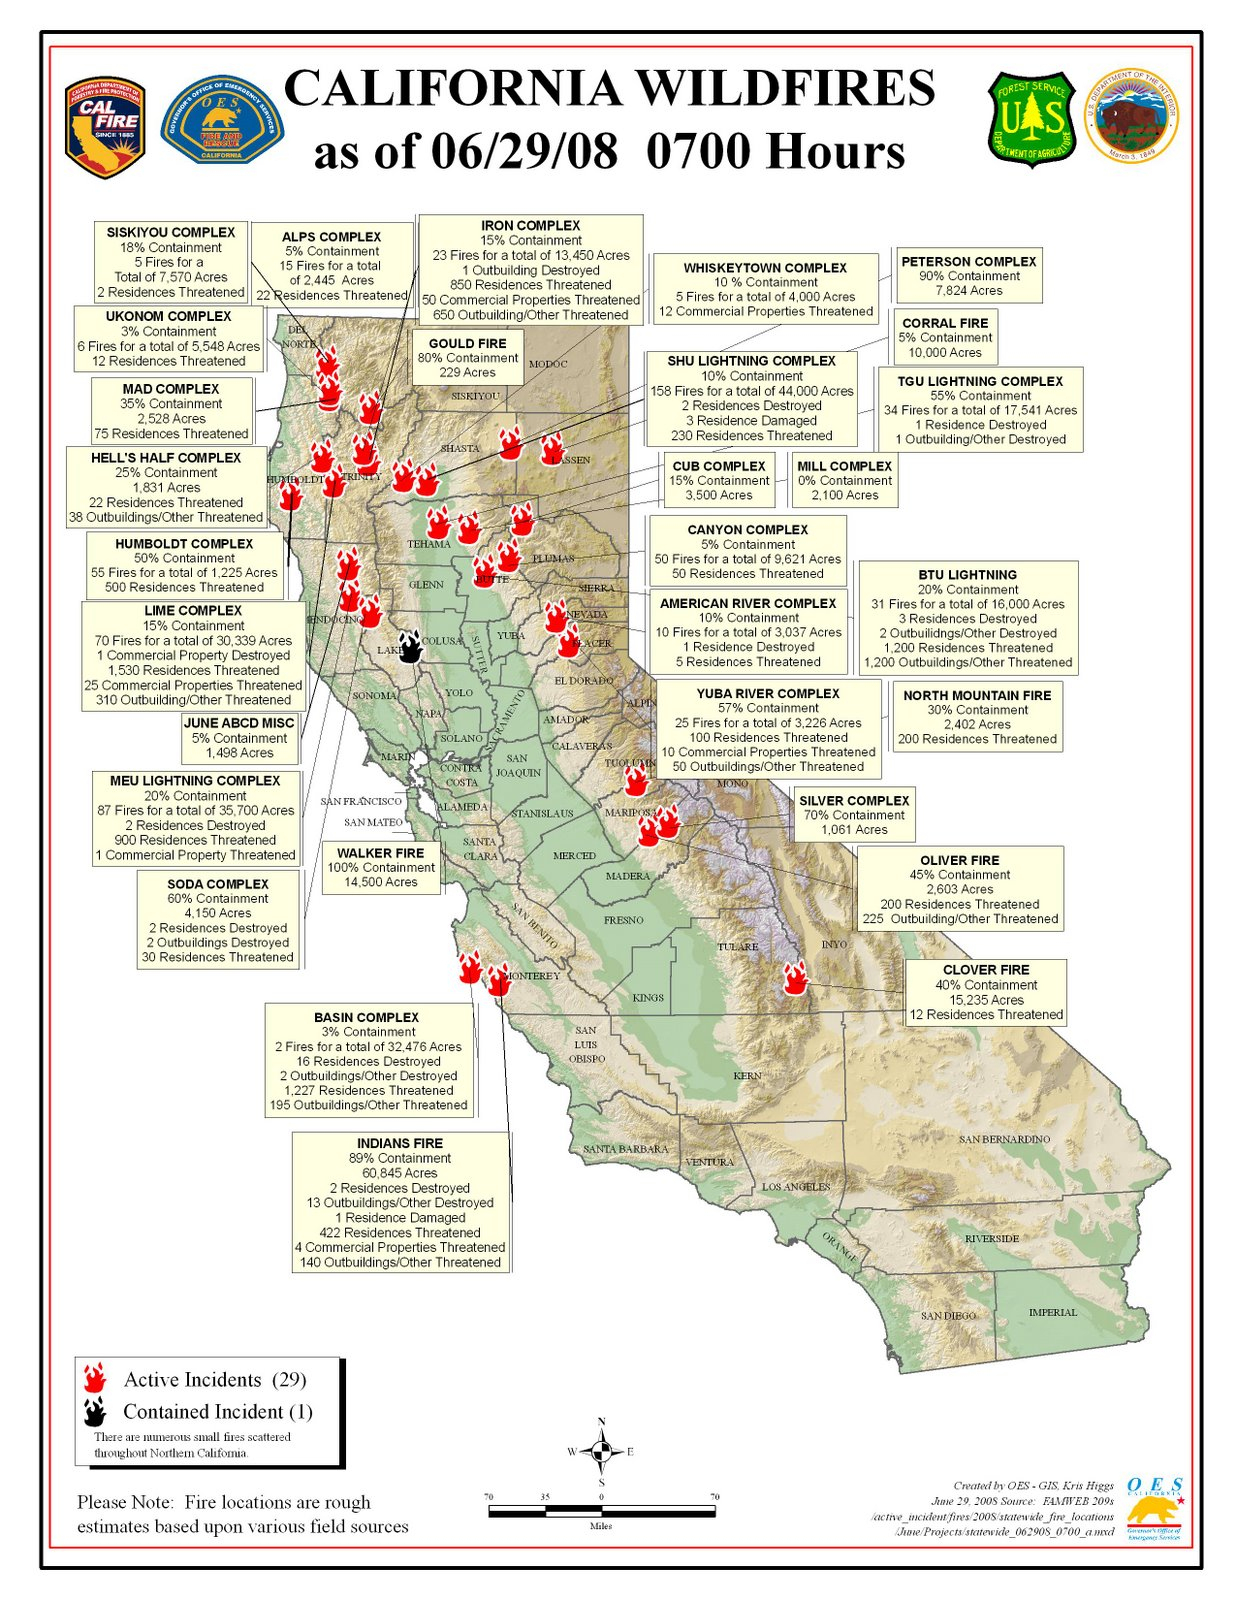 Fires In California Right Now Map - Klipy - California Fire Map Right Now